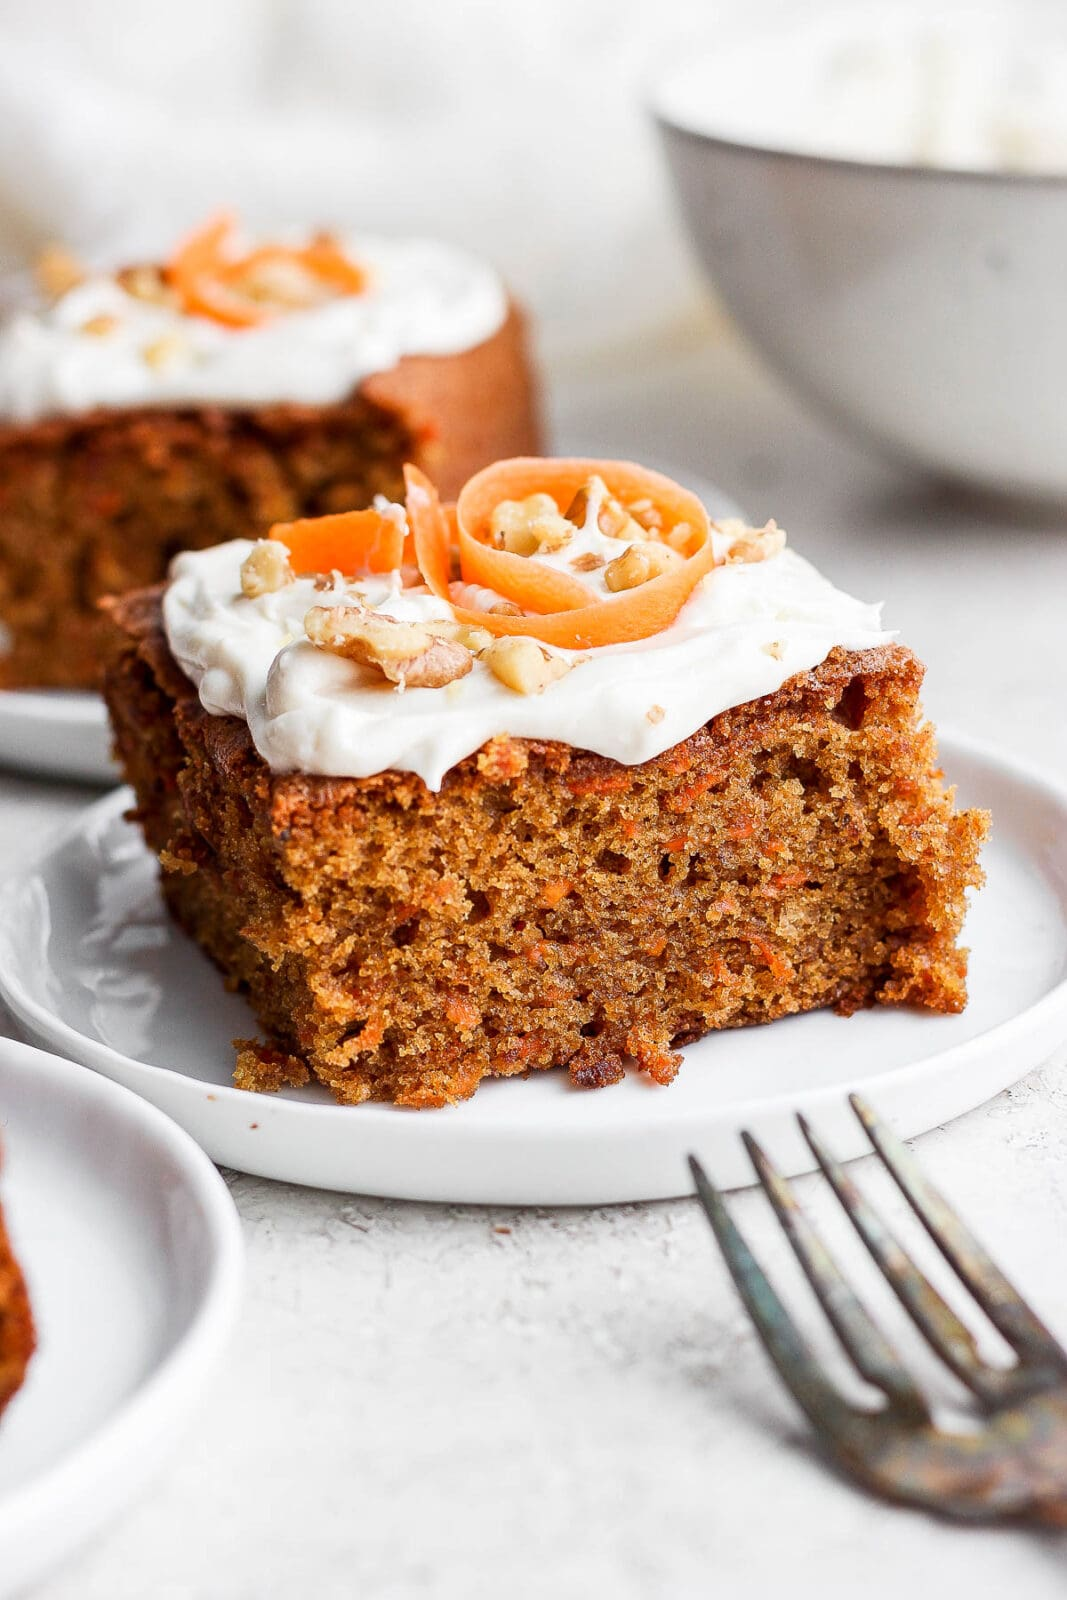 Plate with a slice of gluten free carrot cake with cream cheese frosting.